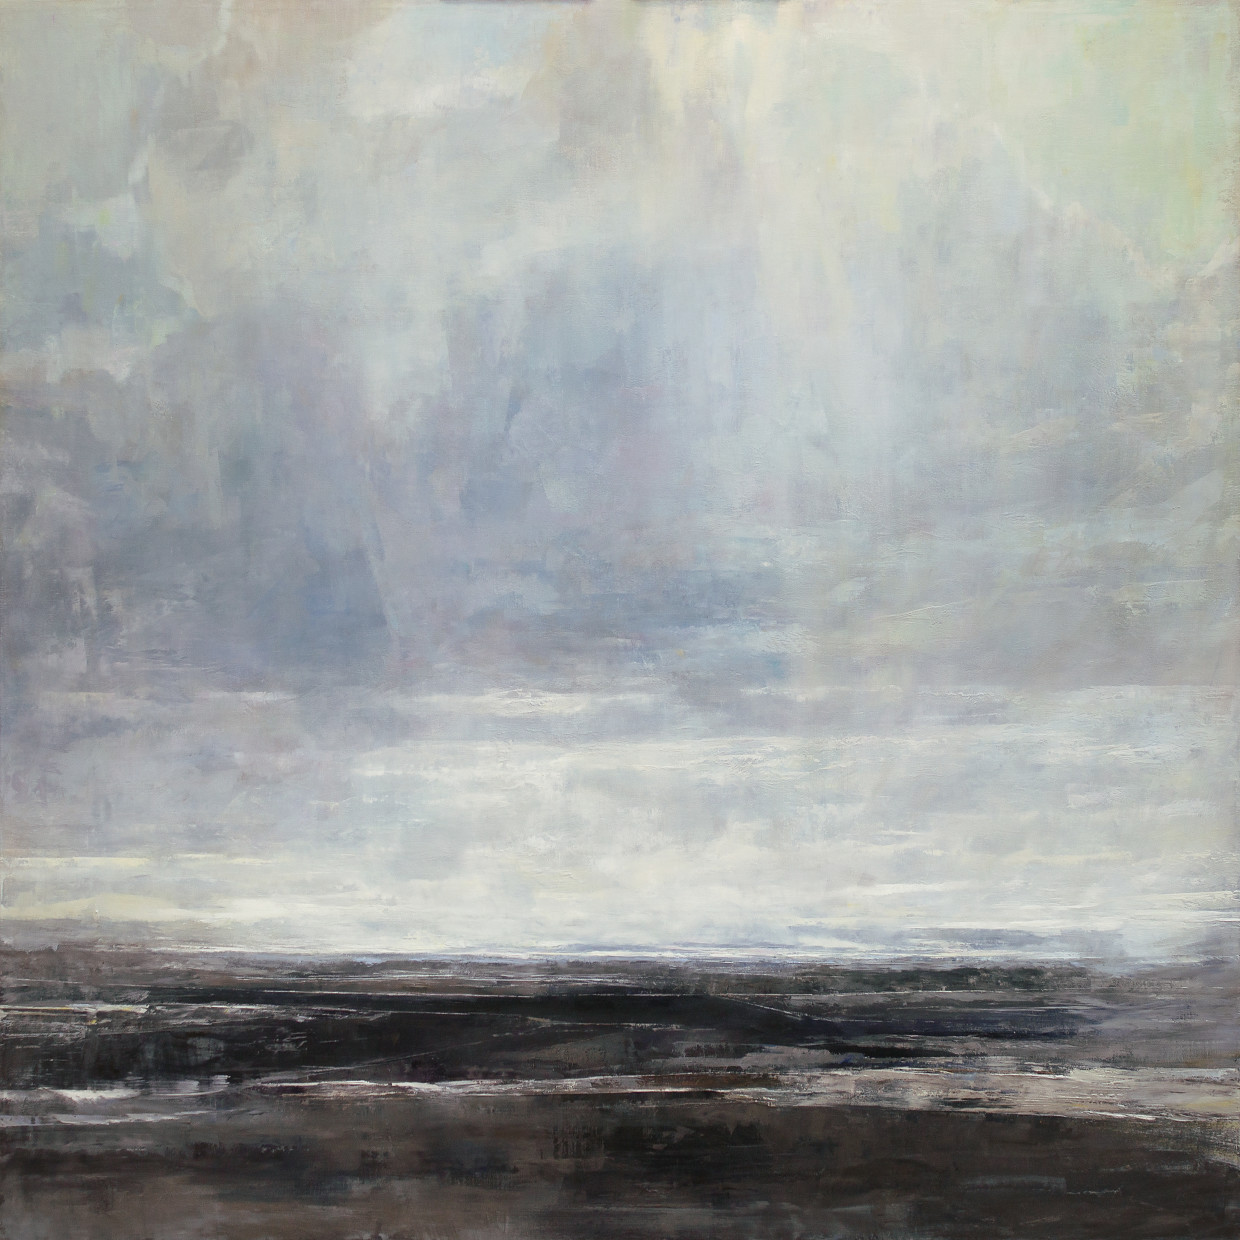 Douglas Fryer | The Edge of Earth and Air